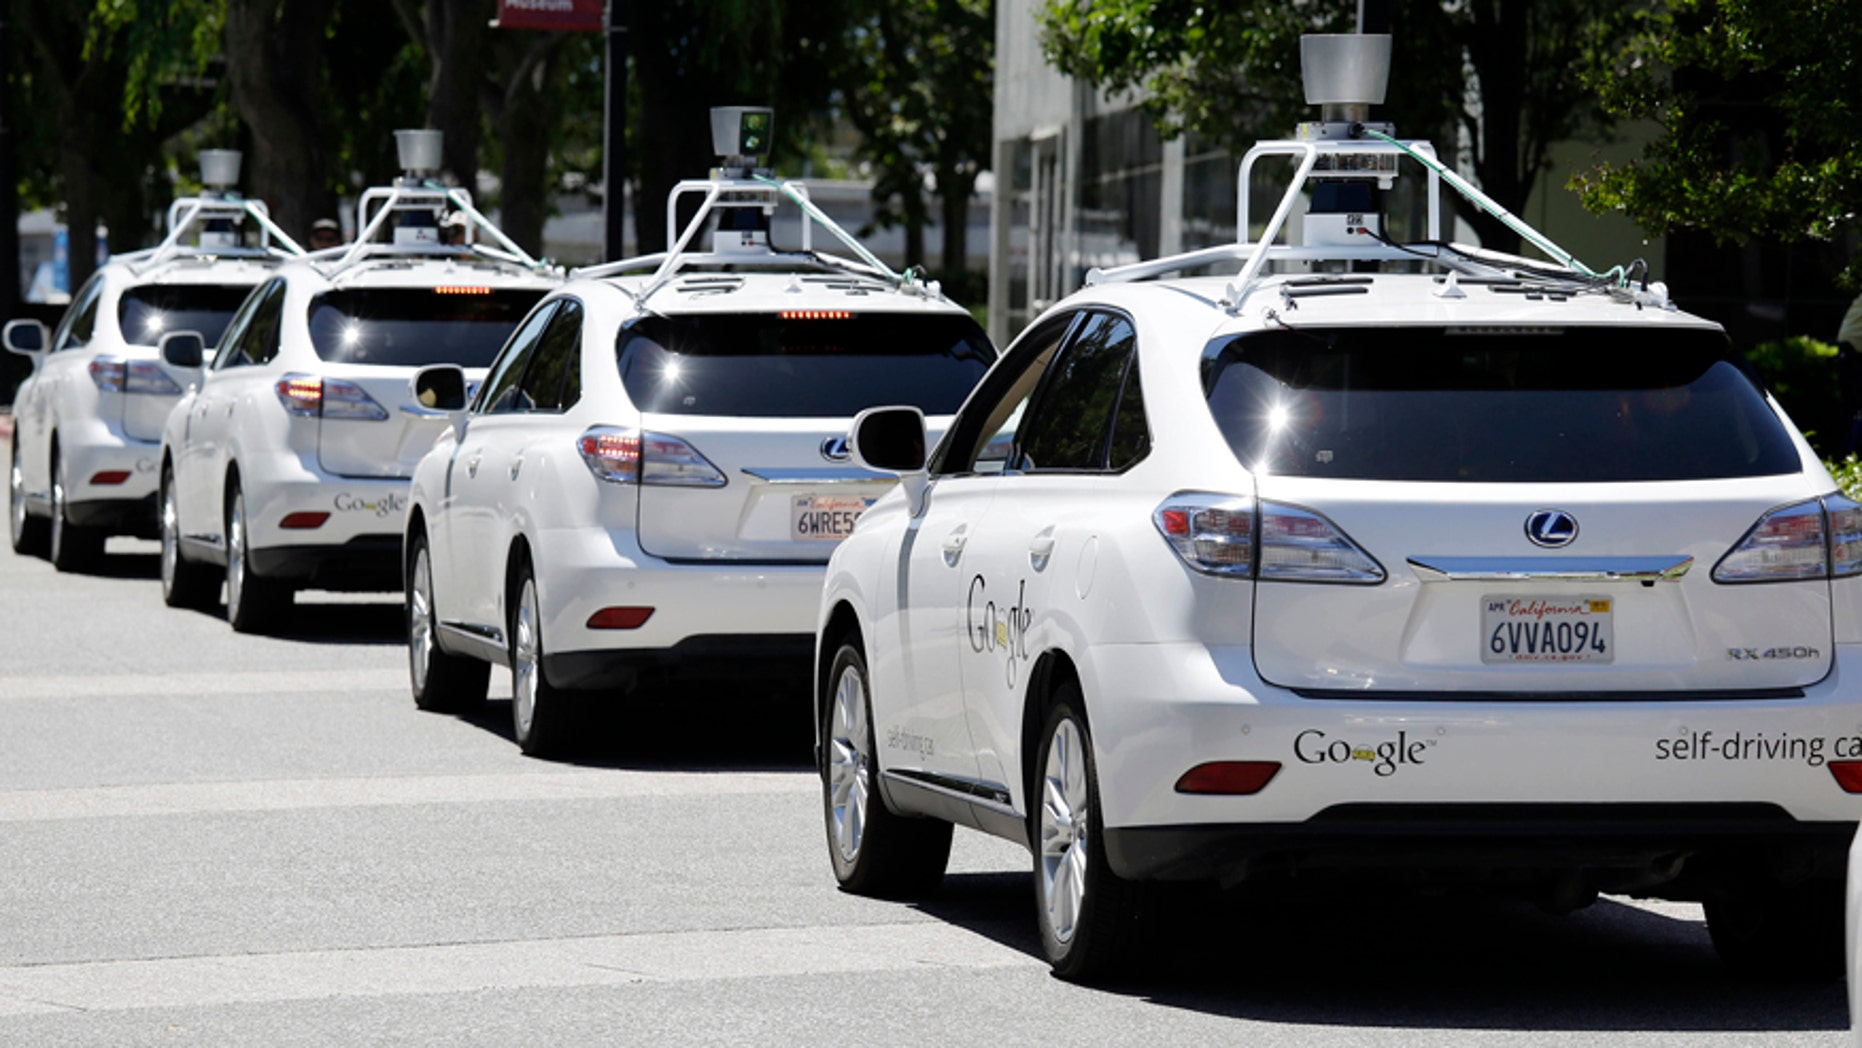 FILE - This May 13, 2014 file photo shows a row of Google self-driving cars in Mountain View, Calif. (AP Photo/Eric Risberg, File)